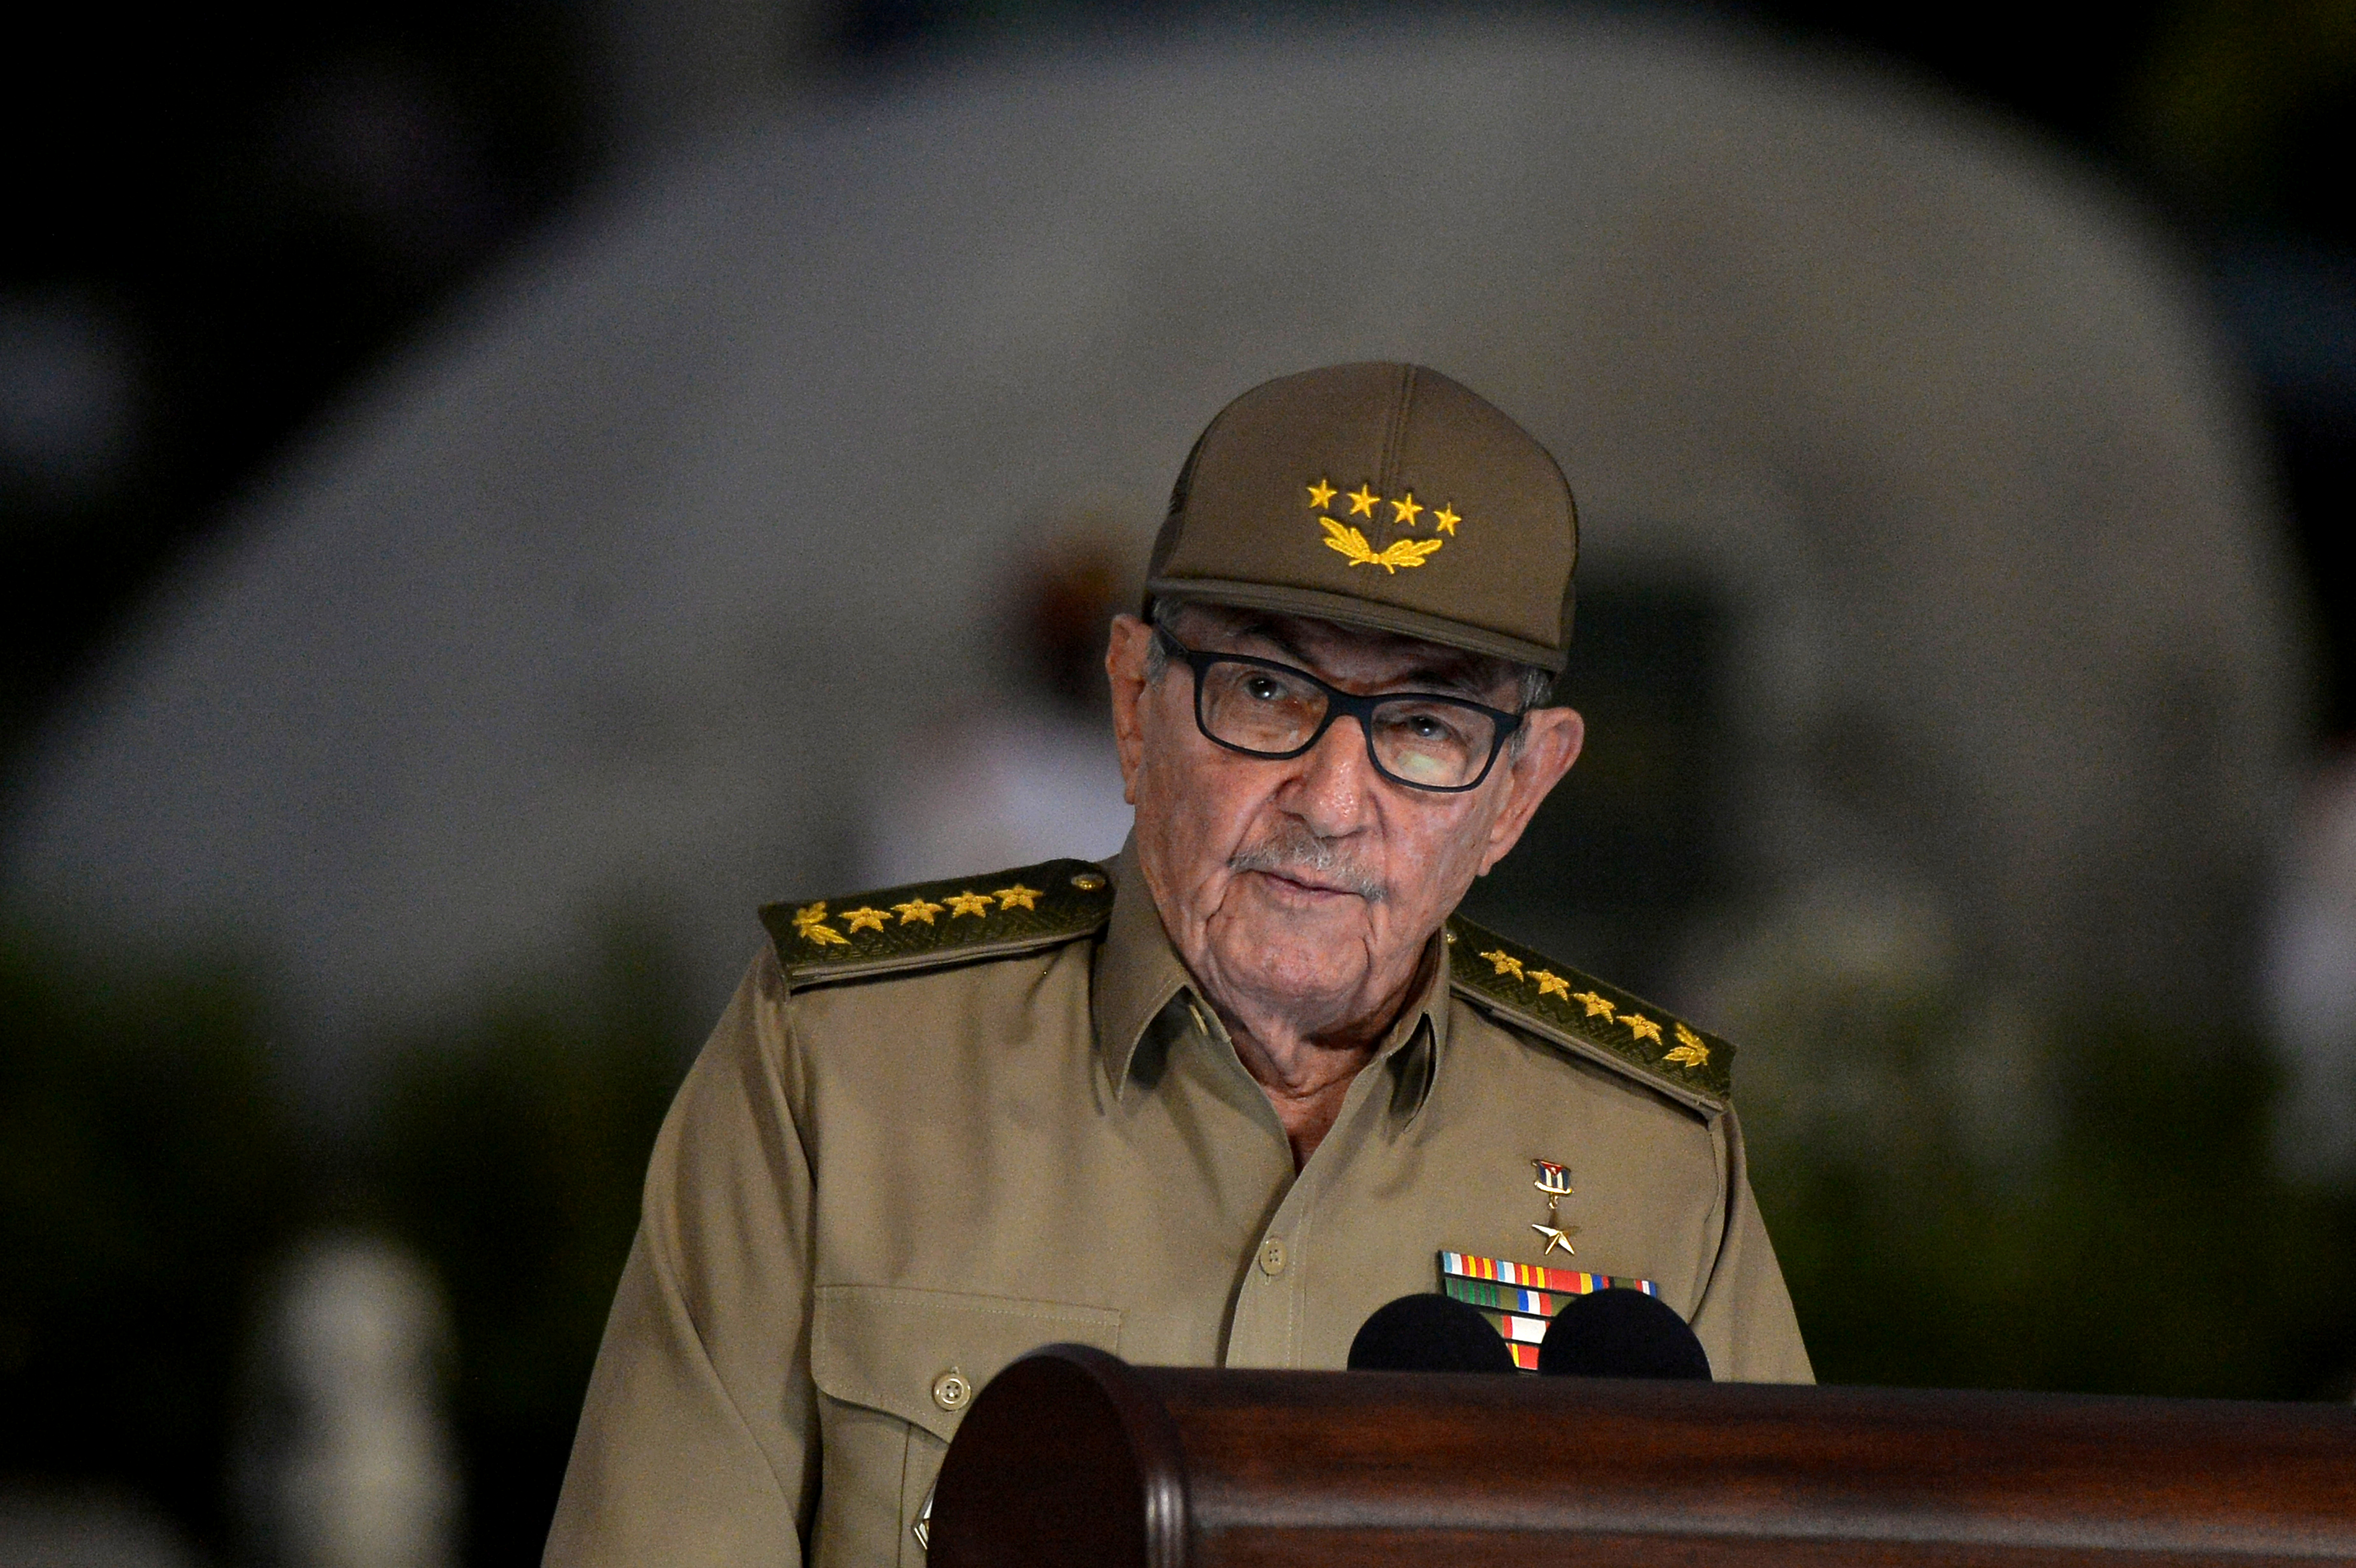 Cuban First Secretary of Communist Party Raul Castro Ruz gives a speech, on January 01, 2019, during the celebration of 60th Anniversary of Cuban Revolution at Santa Ifigenia Cemetery in Santiago de Cuba.  Yamil Lage/Pool via Reuters/File Photo